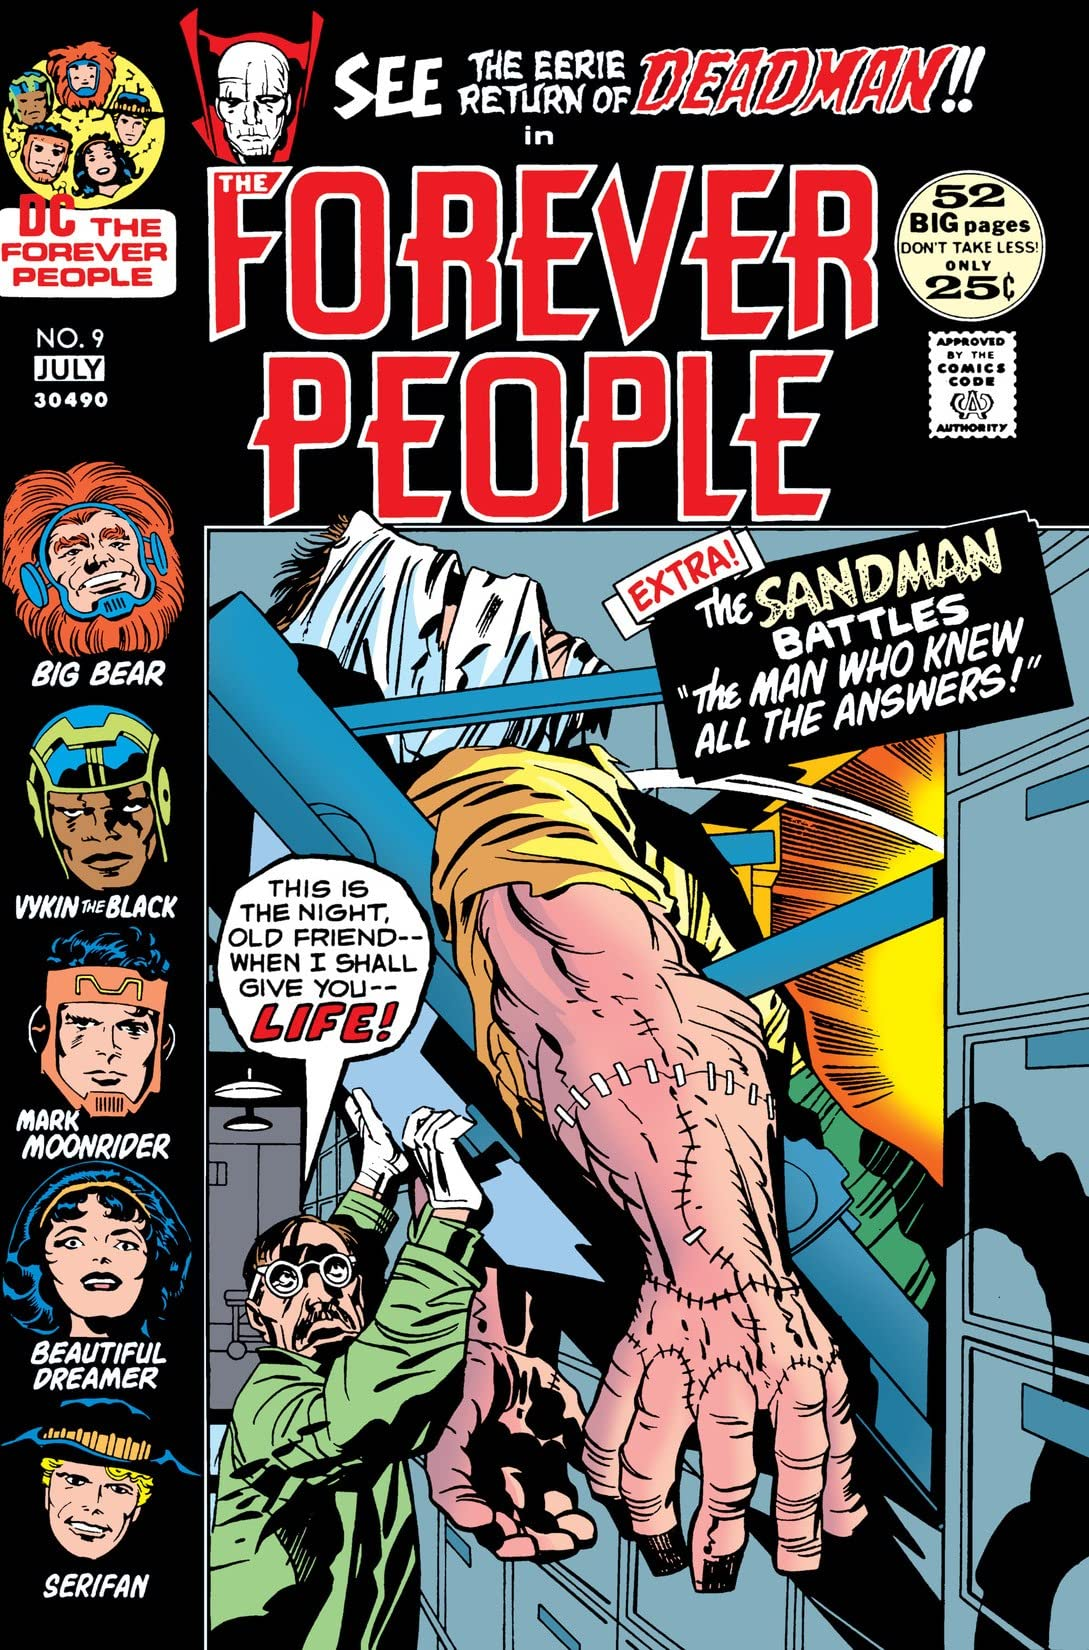 The Forever People (1971-1972) #9